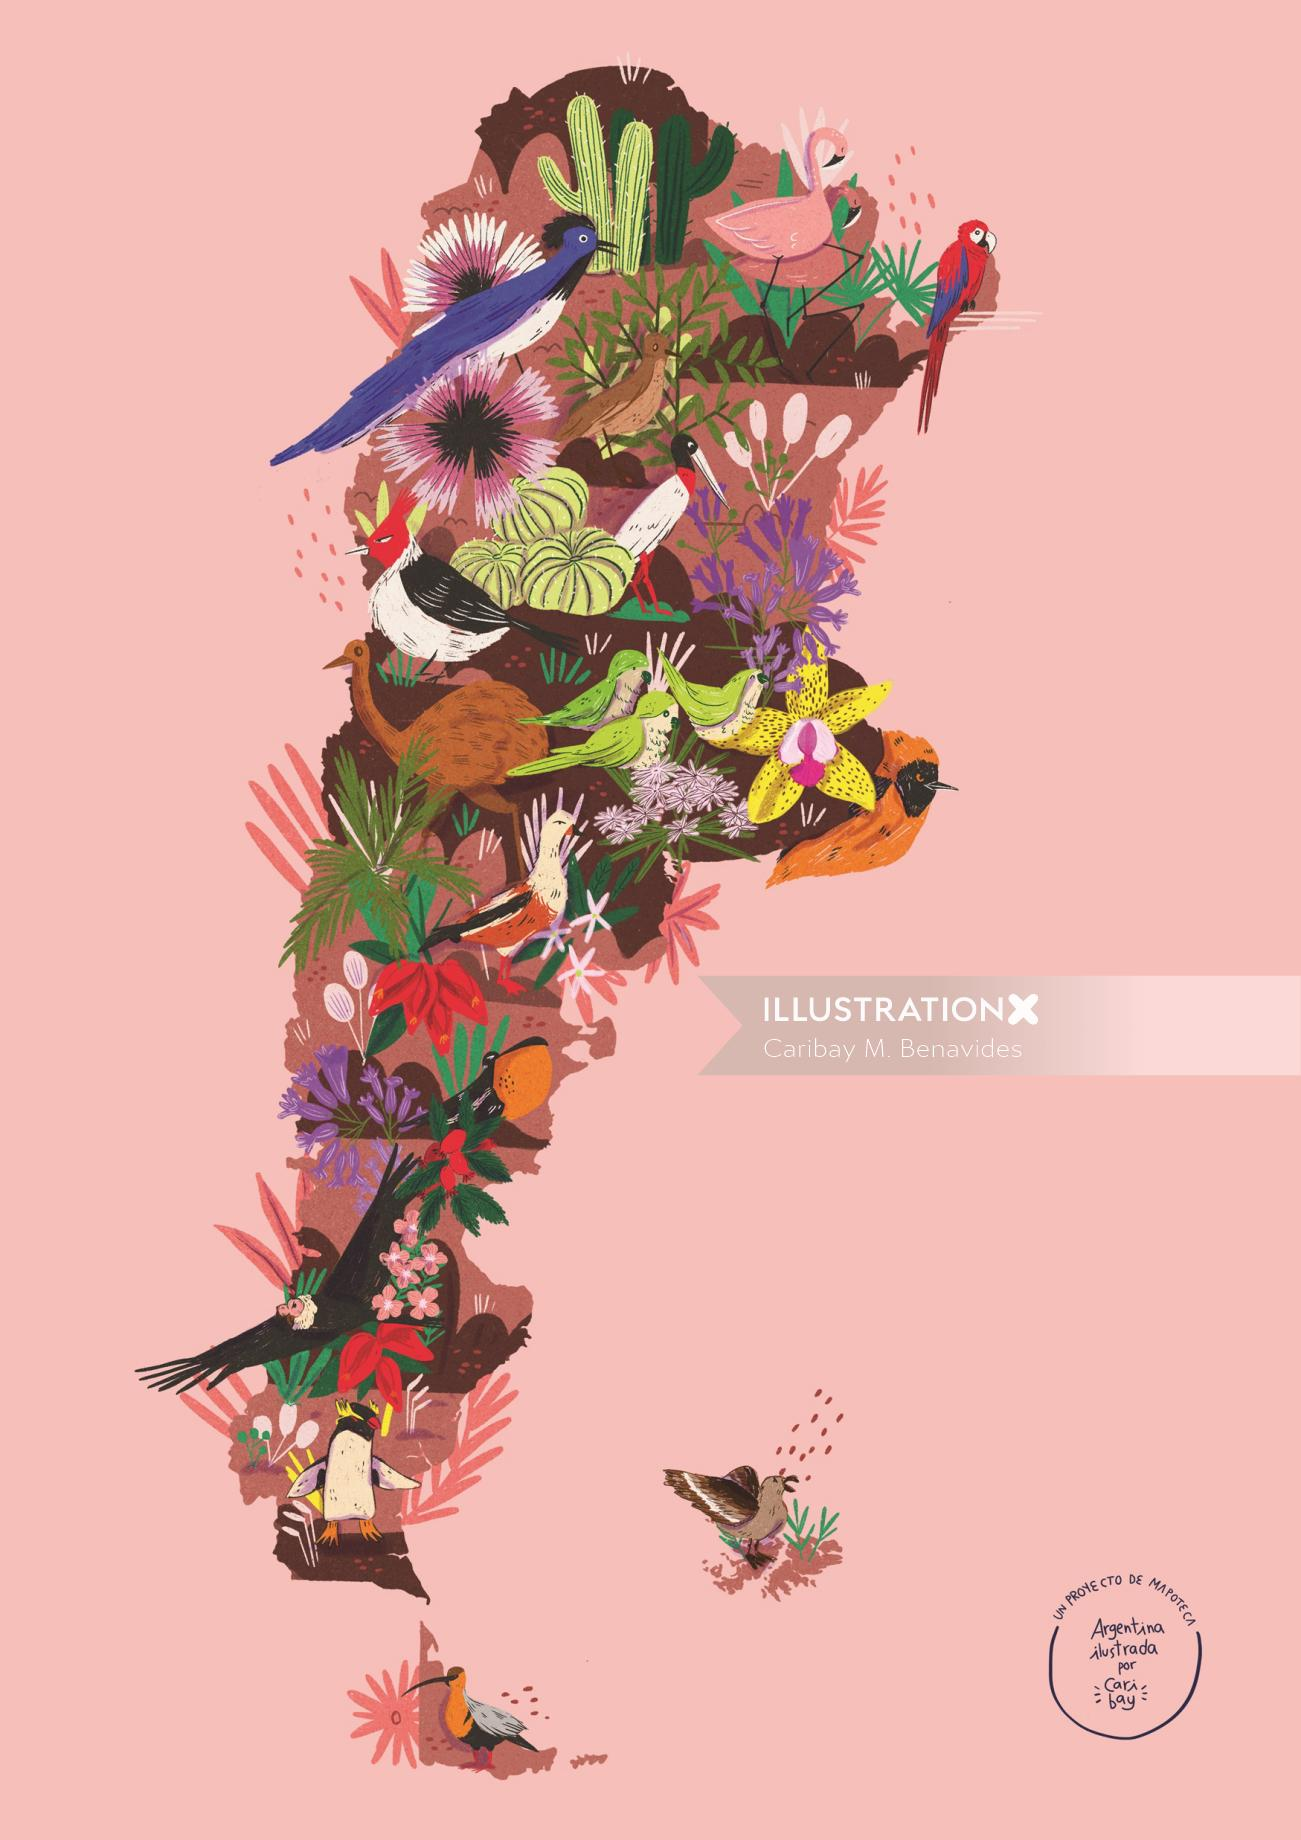 Map illustration of Birds and plants of Argentina for Mapoteca